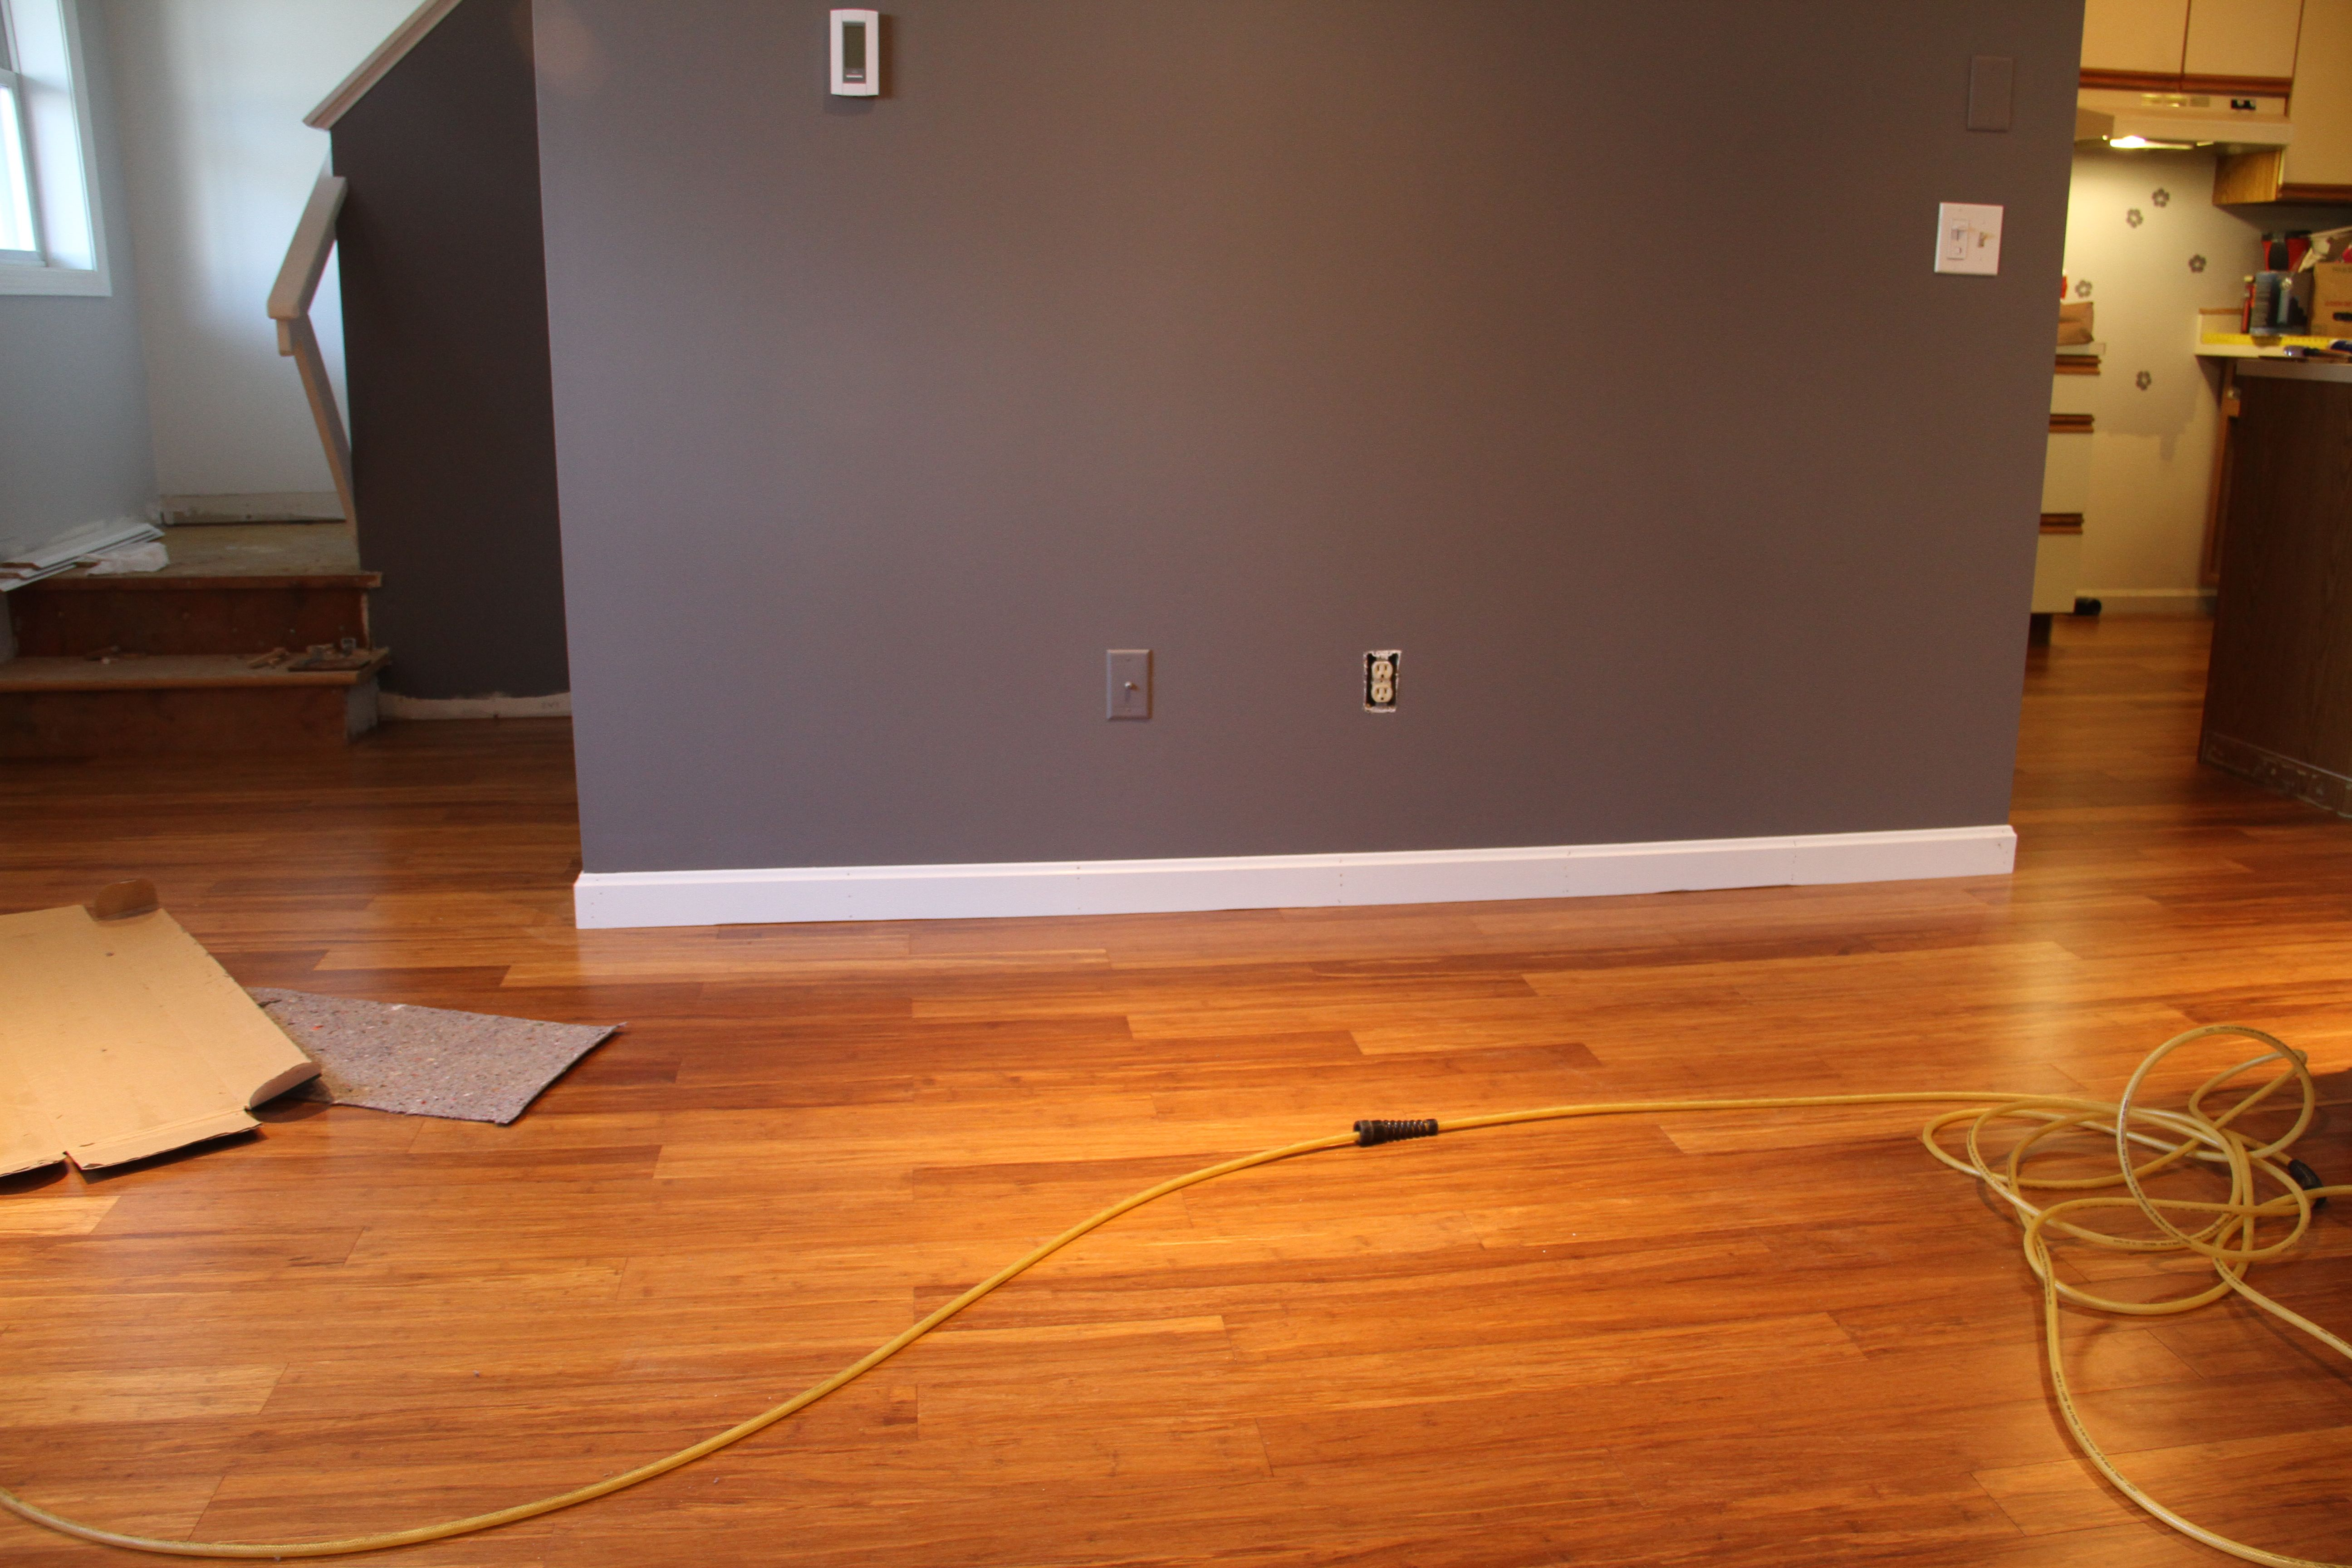 This wall is where the TV will go. The floor color, the wall color, the drama. Love it.